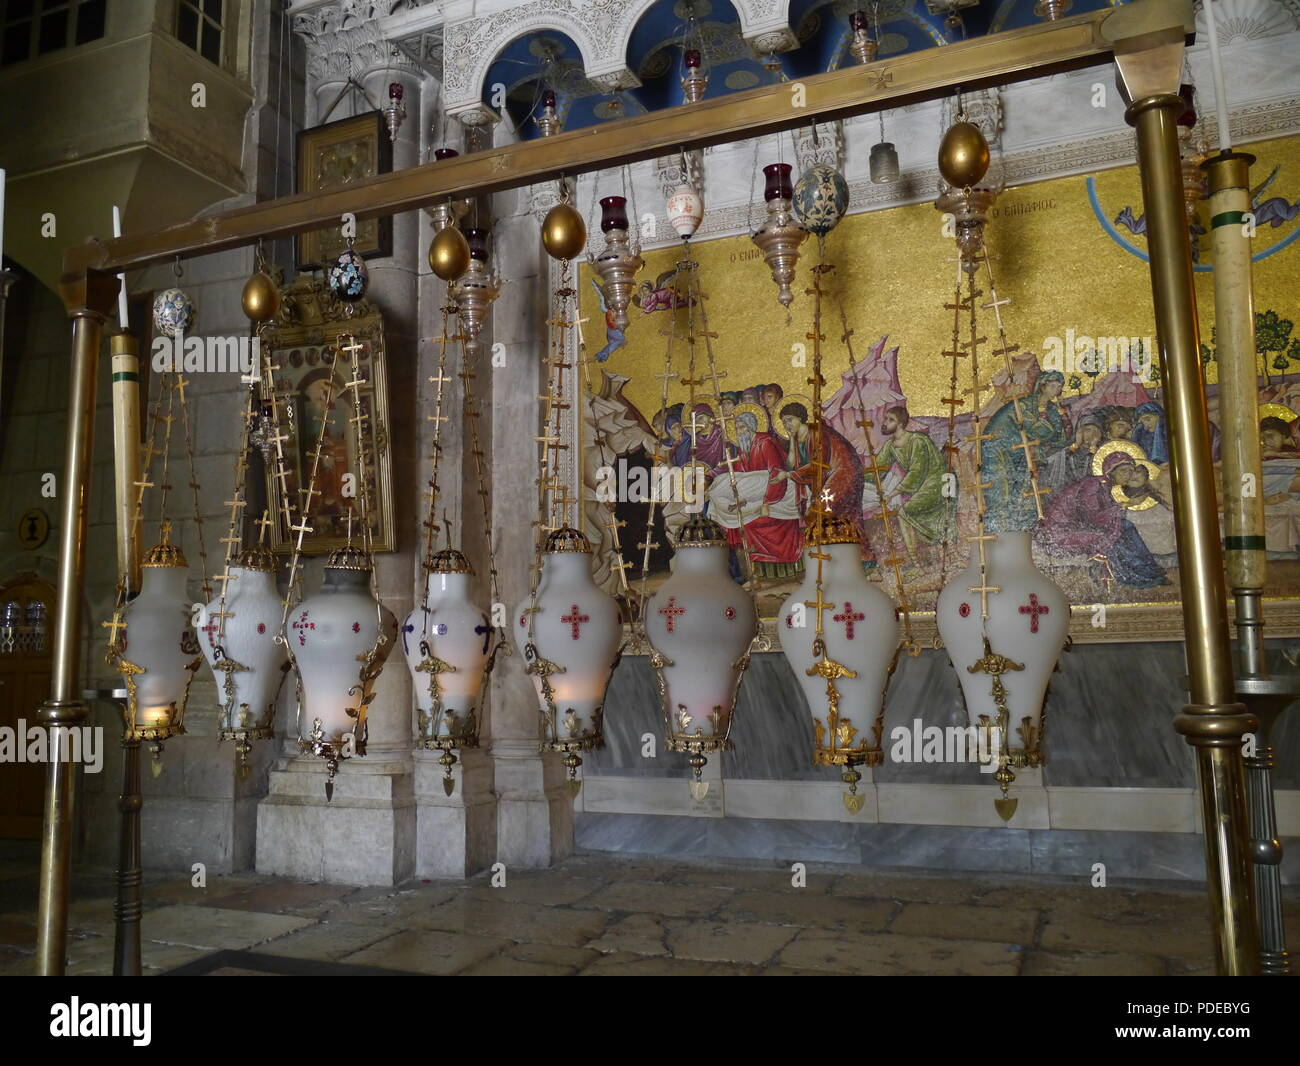 Jerusalem, interior of Church of the Holy Sepulchre - Stock Image